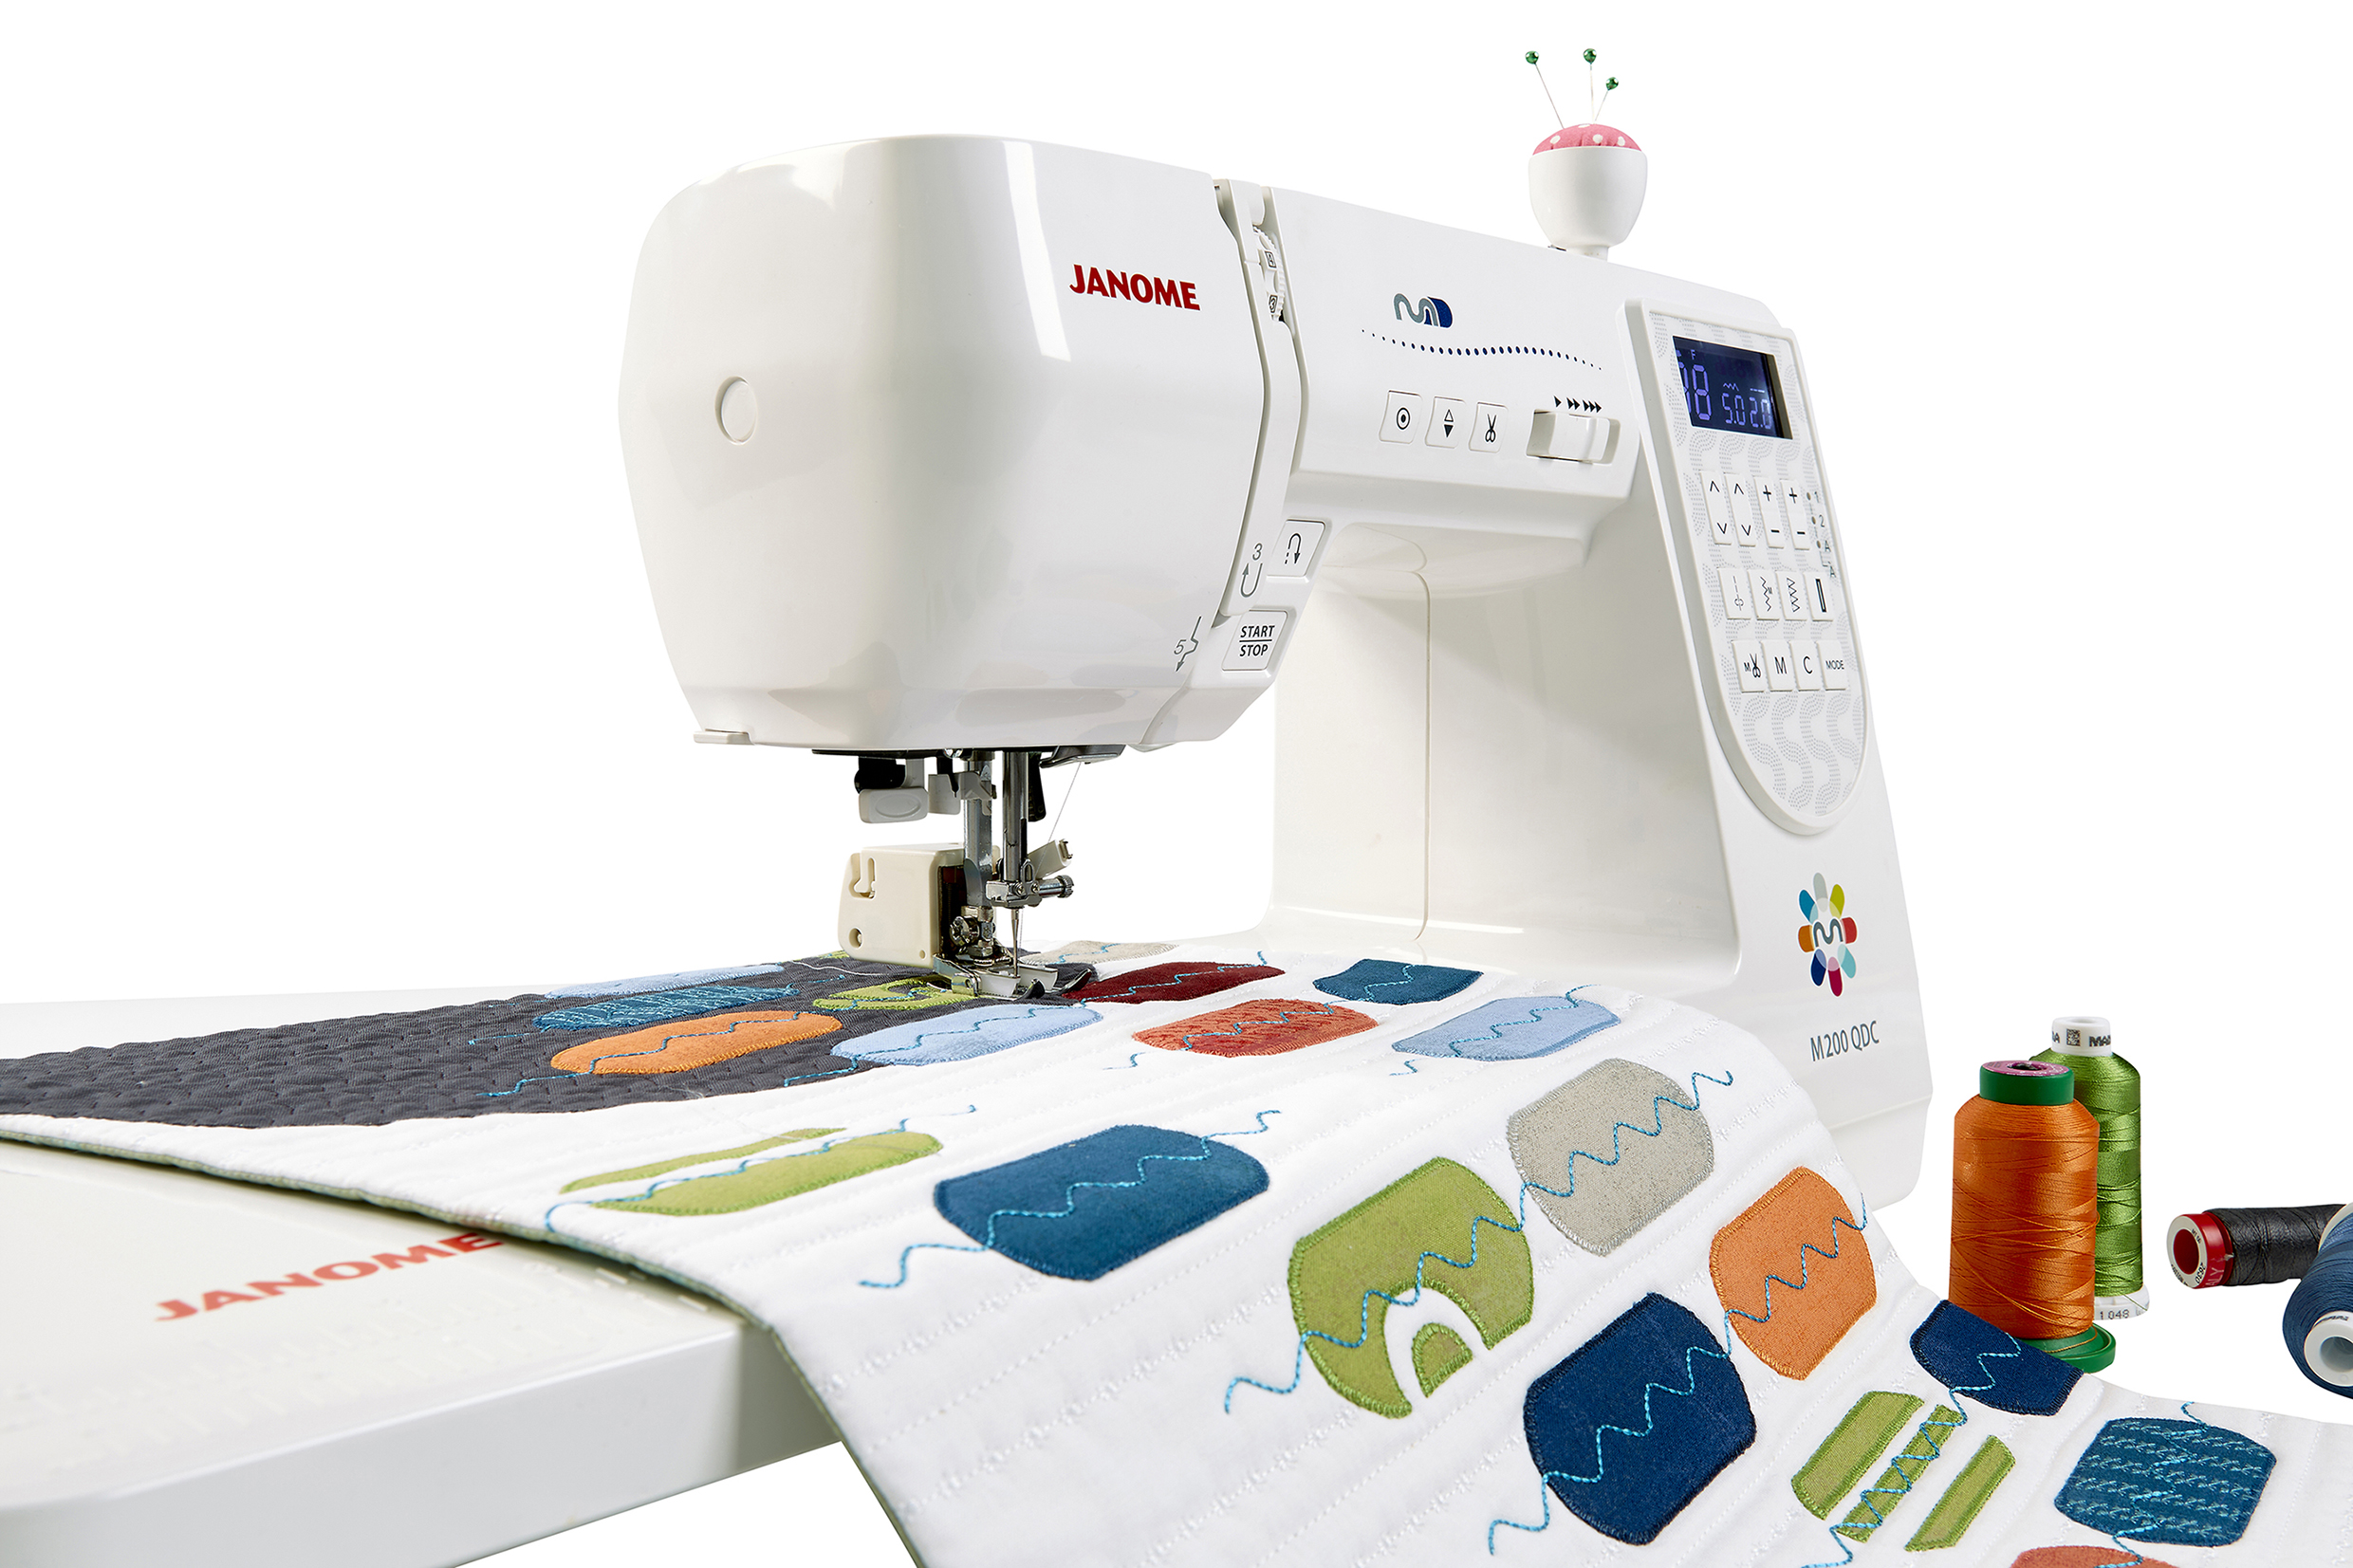 Janome M200 QDC 3 - Franklins Group